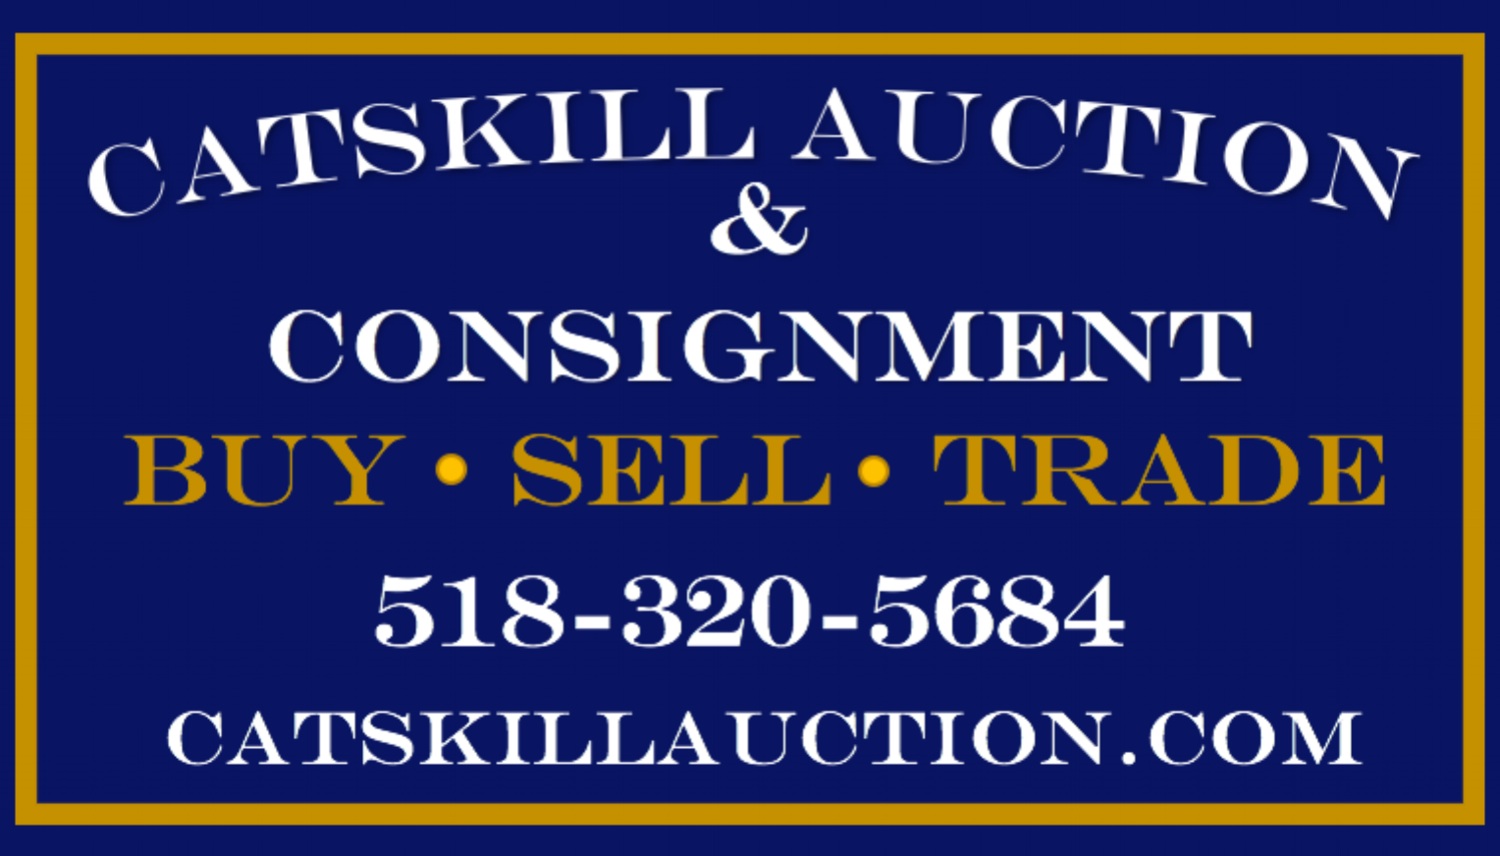 Catskill Auction